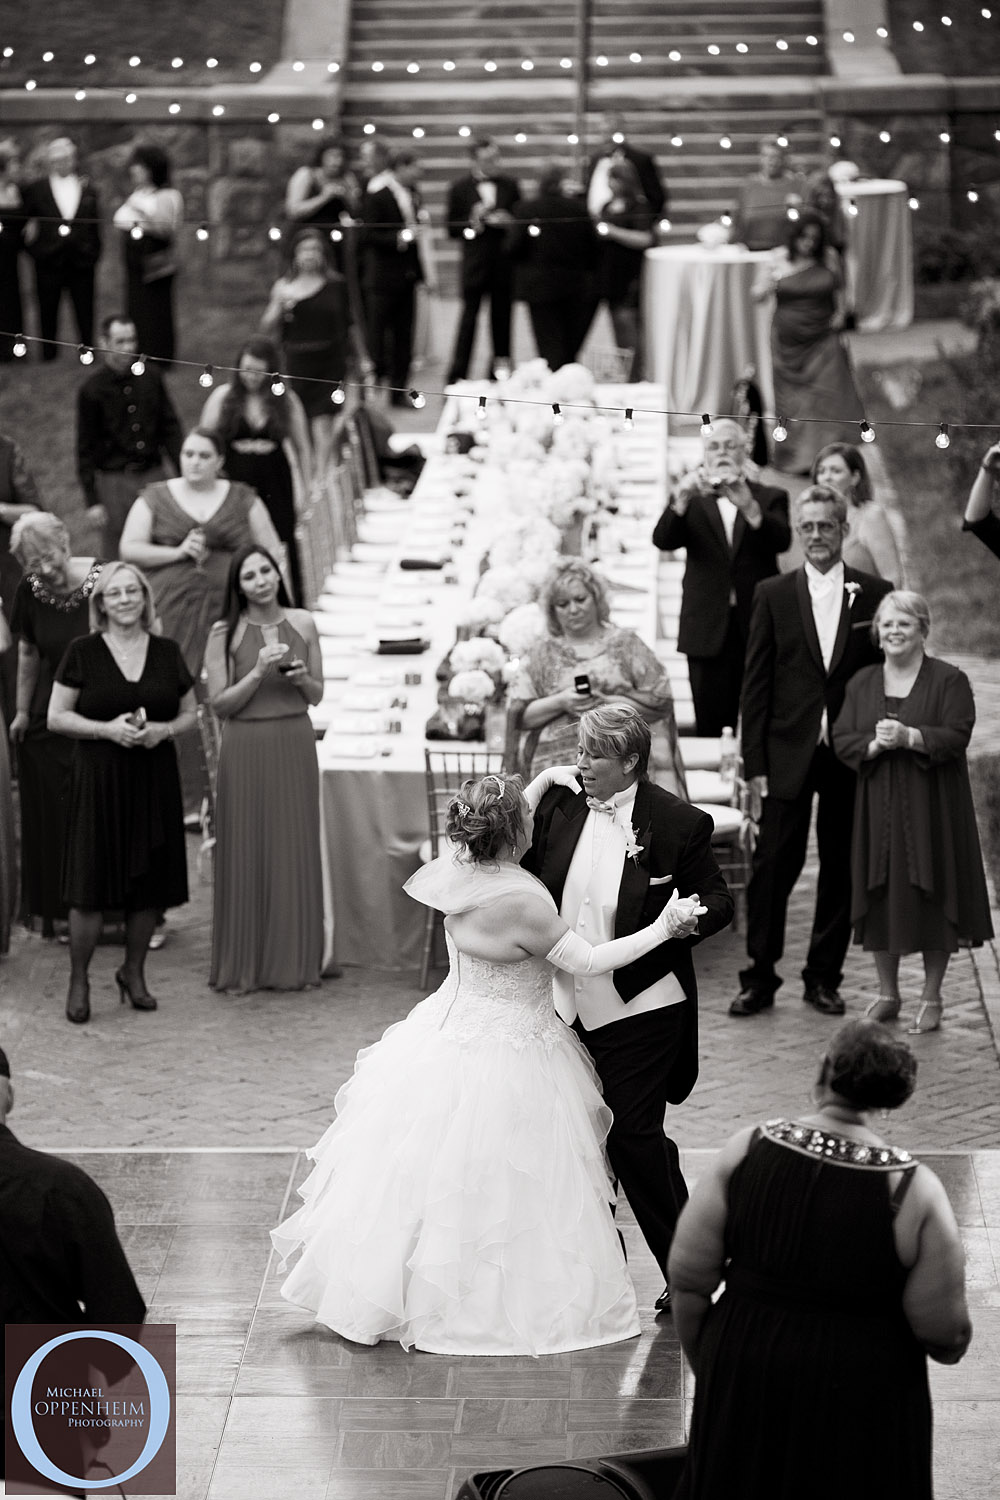 MaryAnne&Tish Wedding 2015- 0925 bw 1st edit.jpg